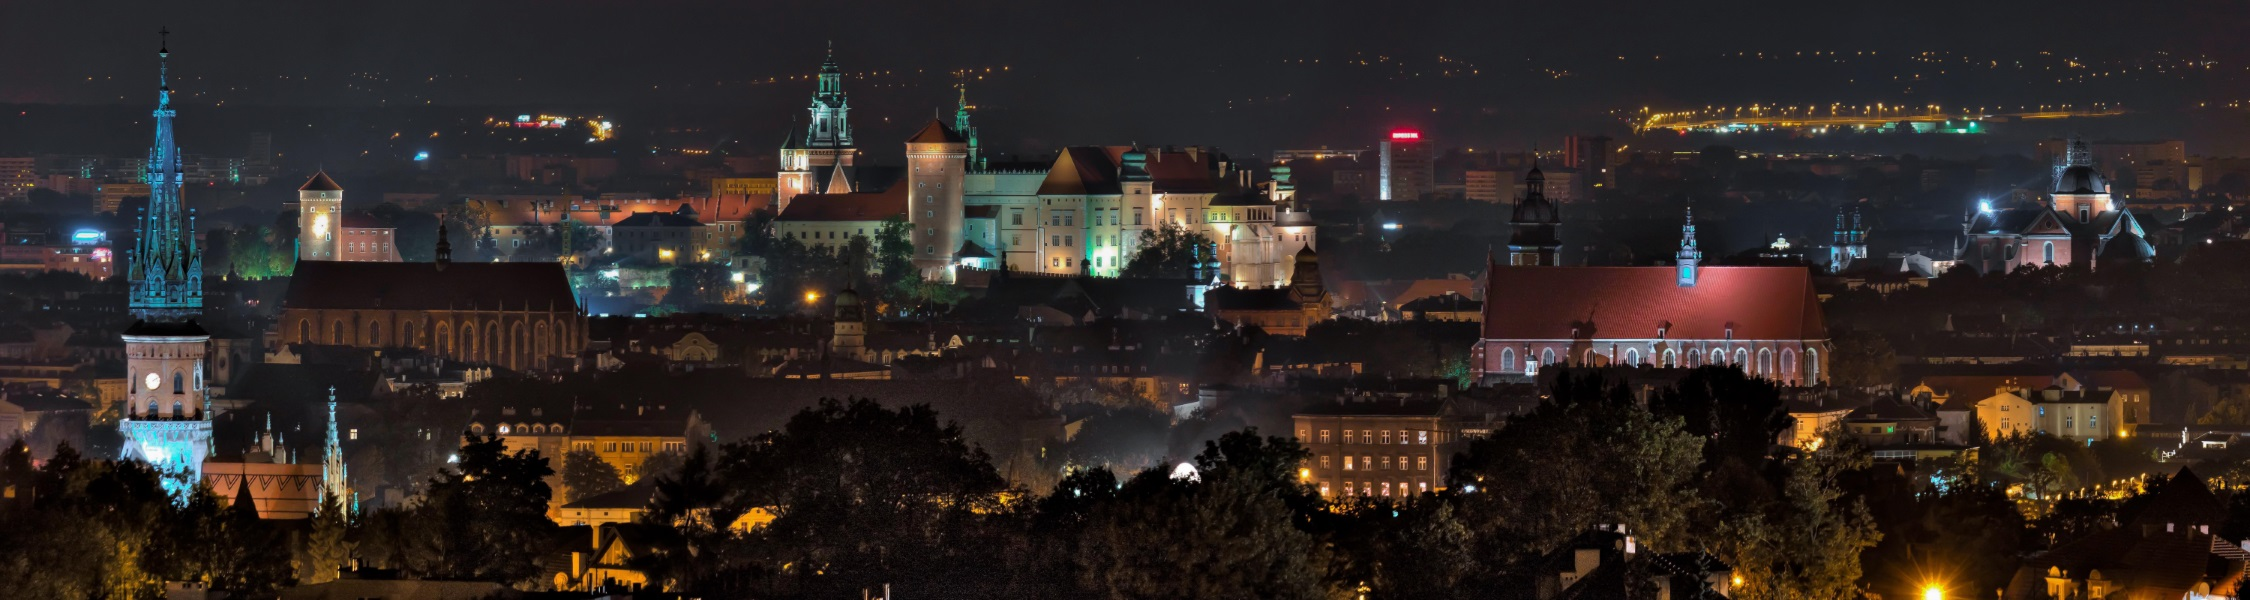 13 largest software companies in Krakow